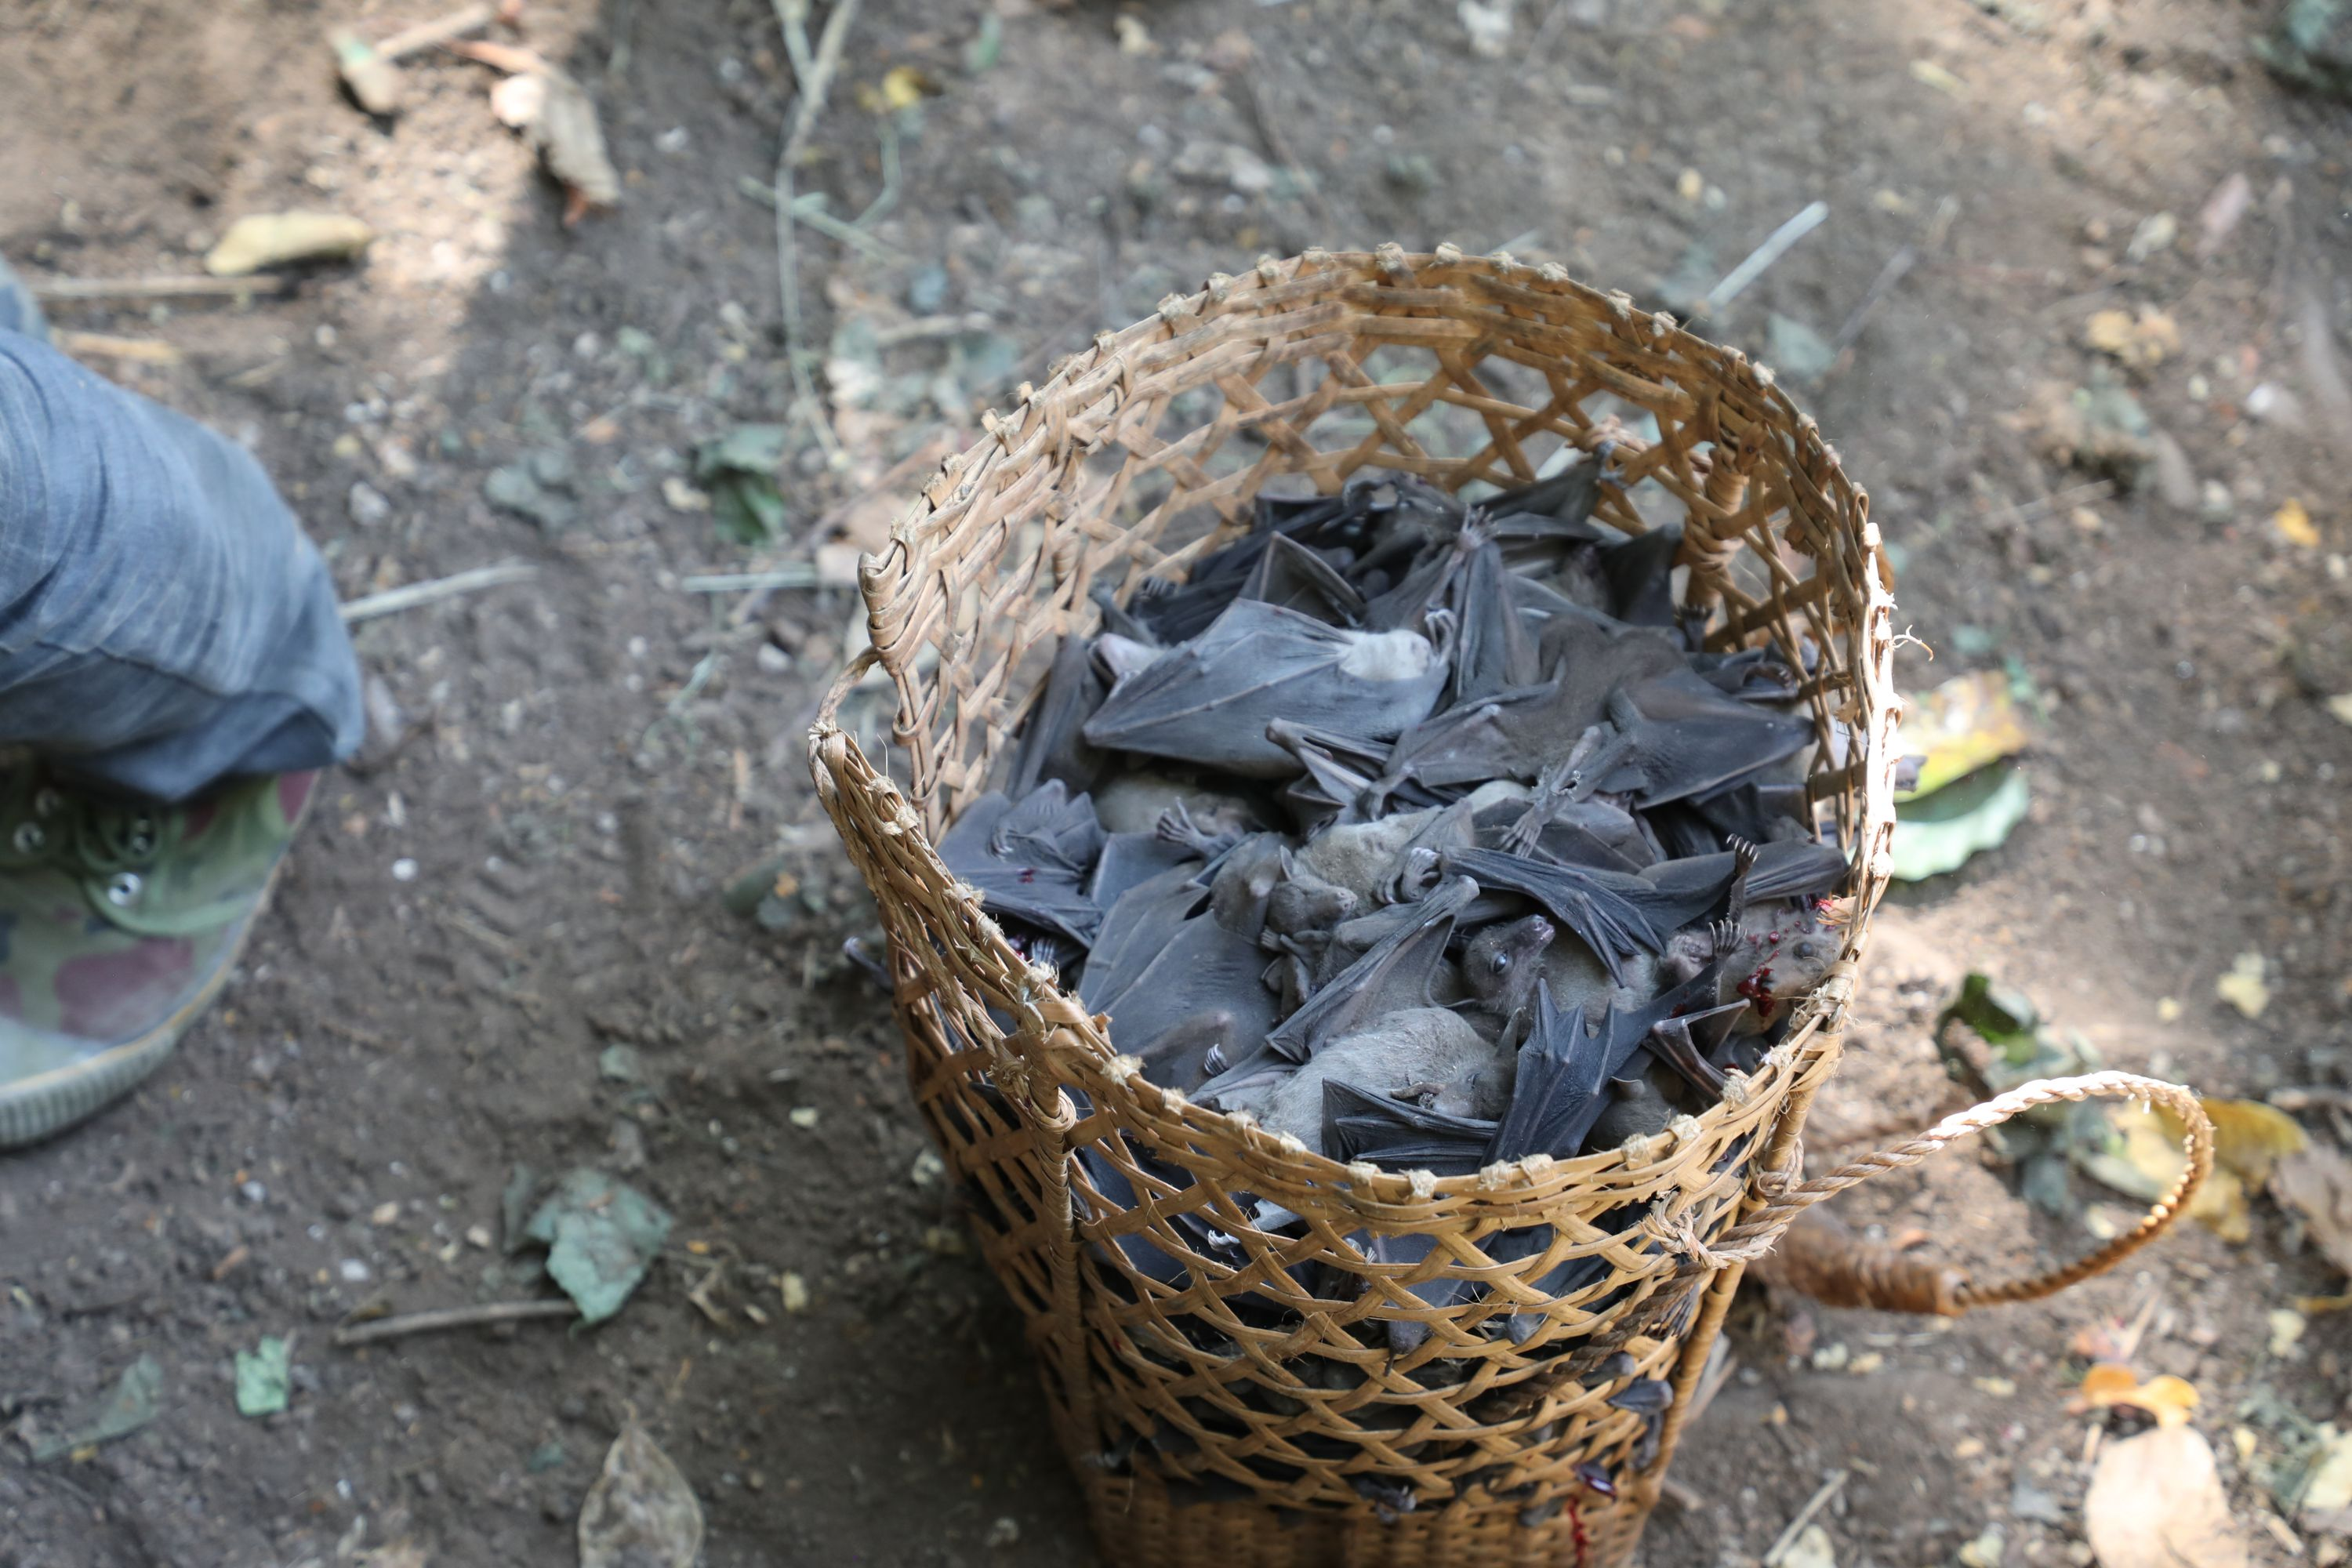 A photo of bats in a basket